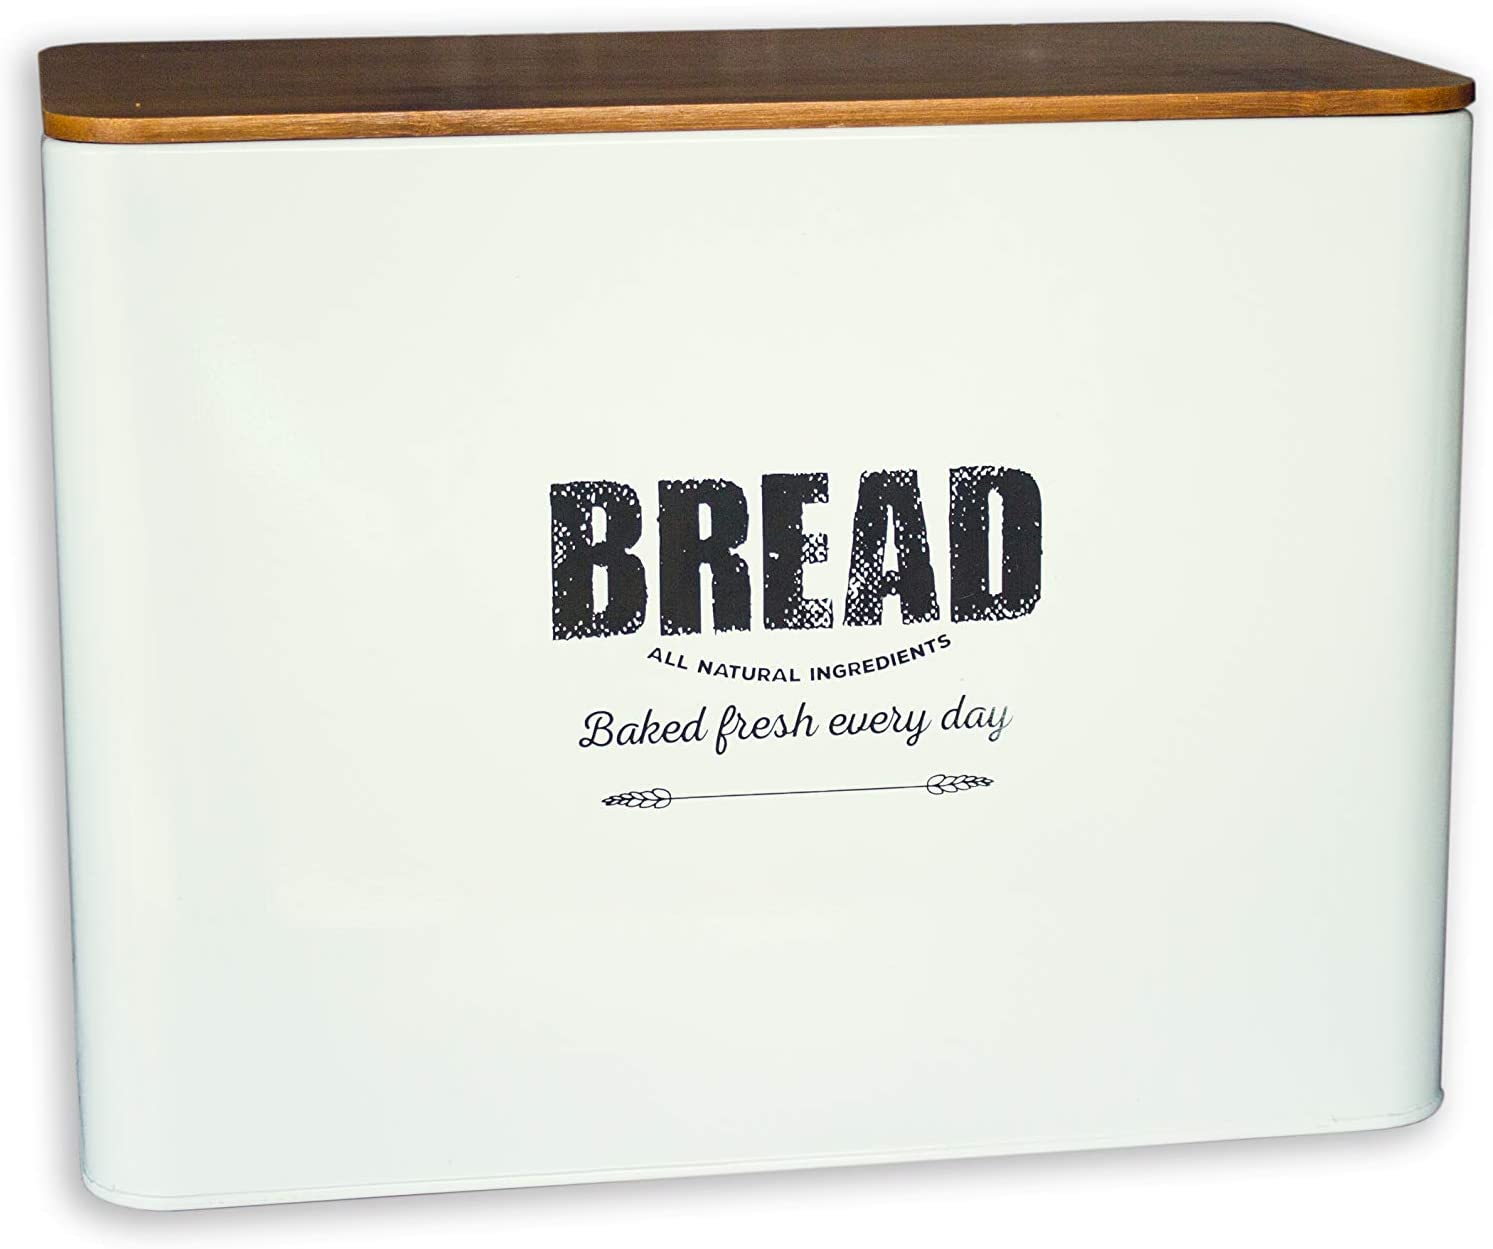 Bread depot Box for Kitchen Countertop Traditi Metal Bamboo Lid with Award-winning store